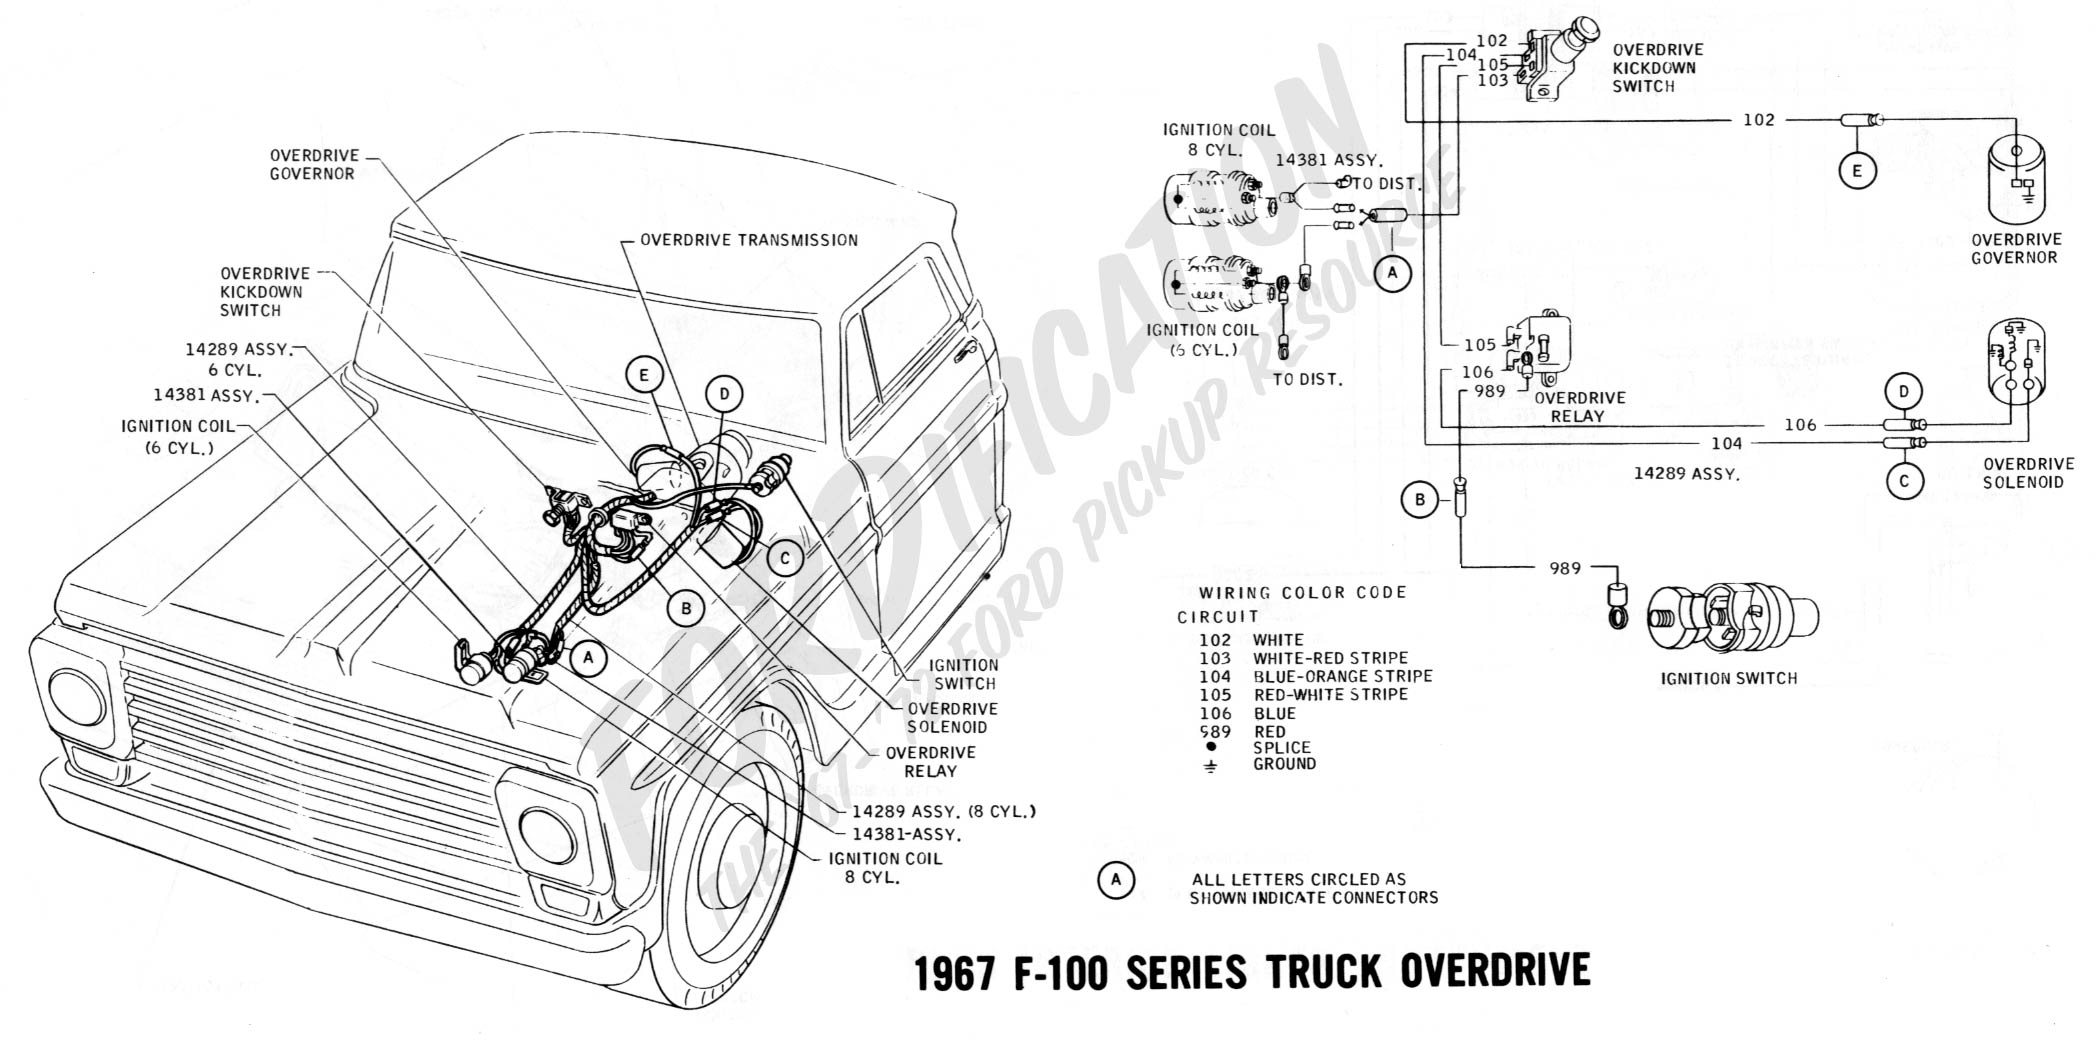 1968 ford steering column wiring colors